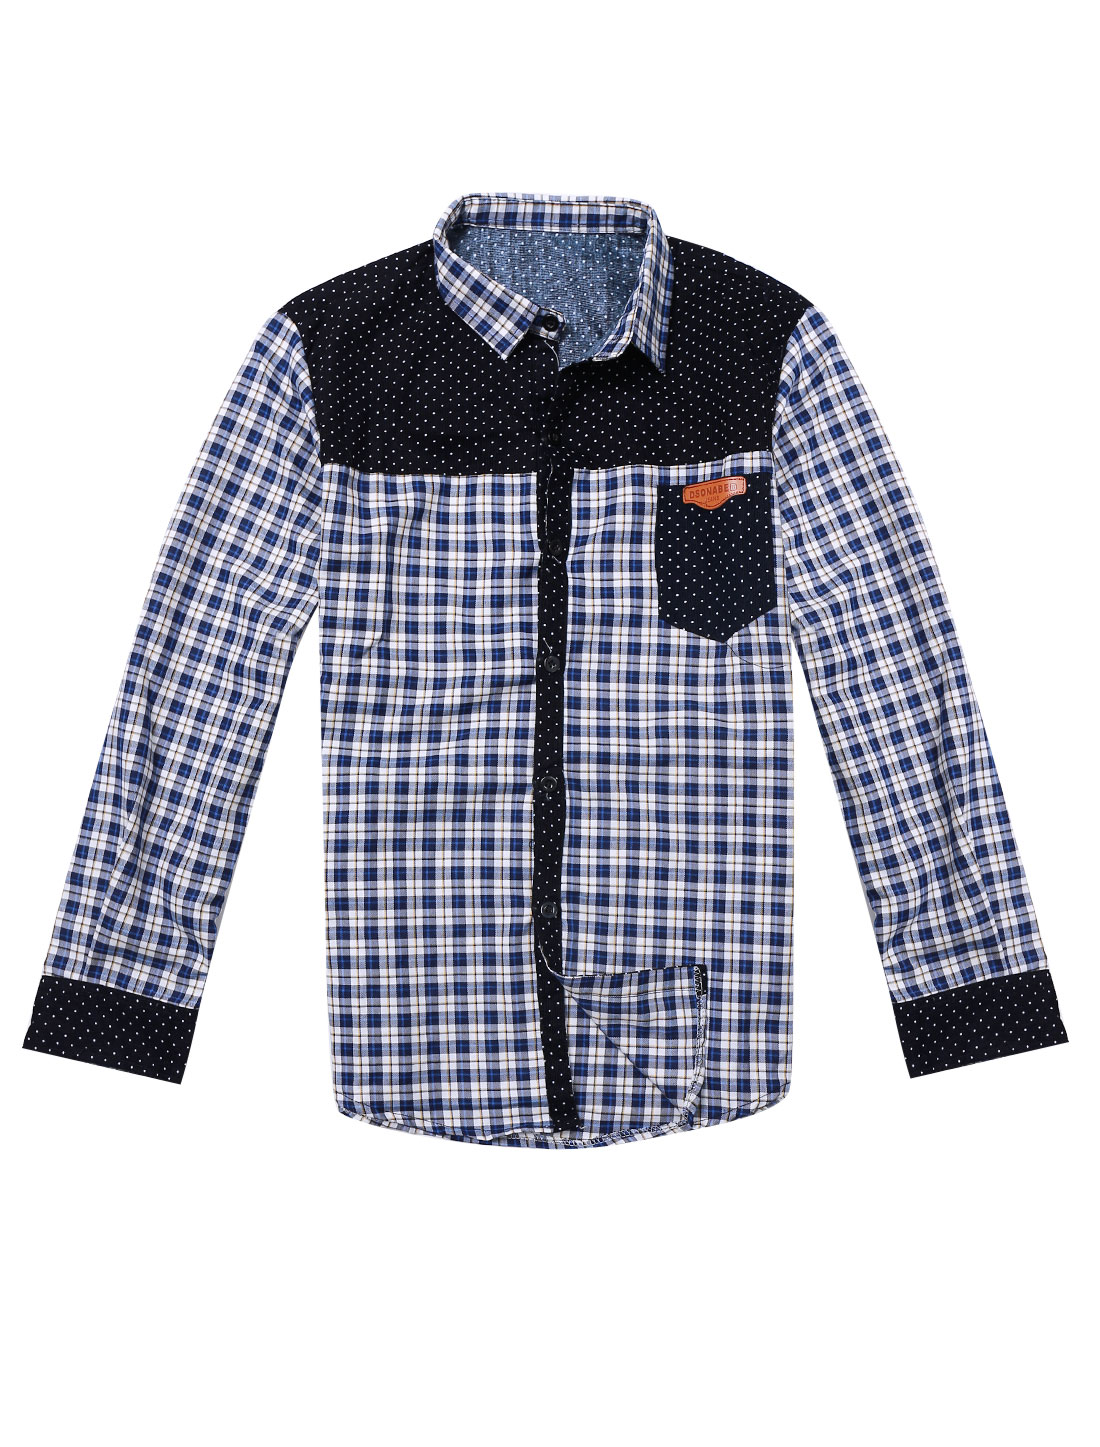 Man Panel Plaids Long Sleeves Blue White Casual Shirt S